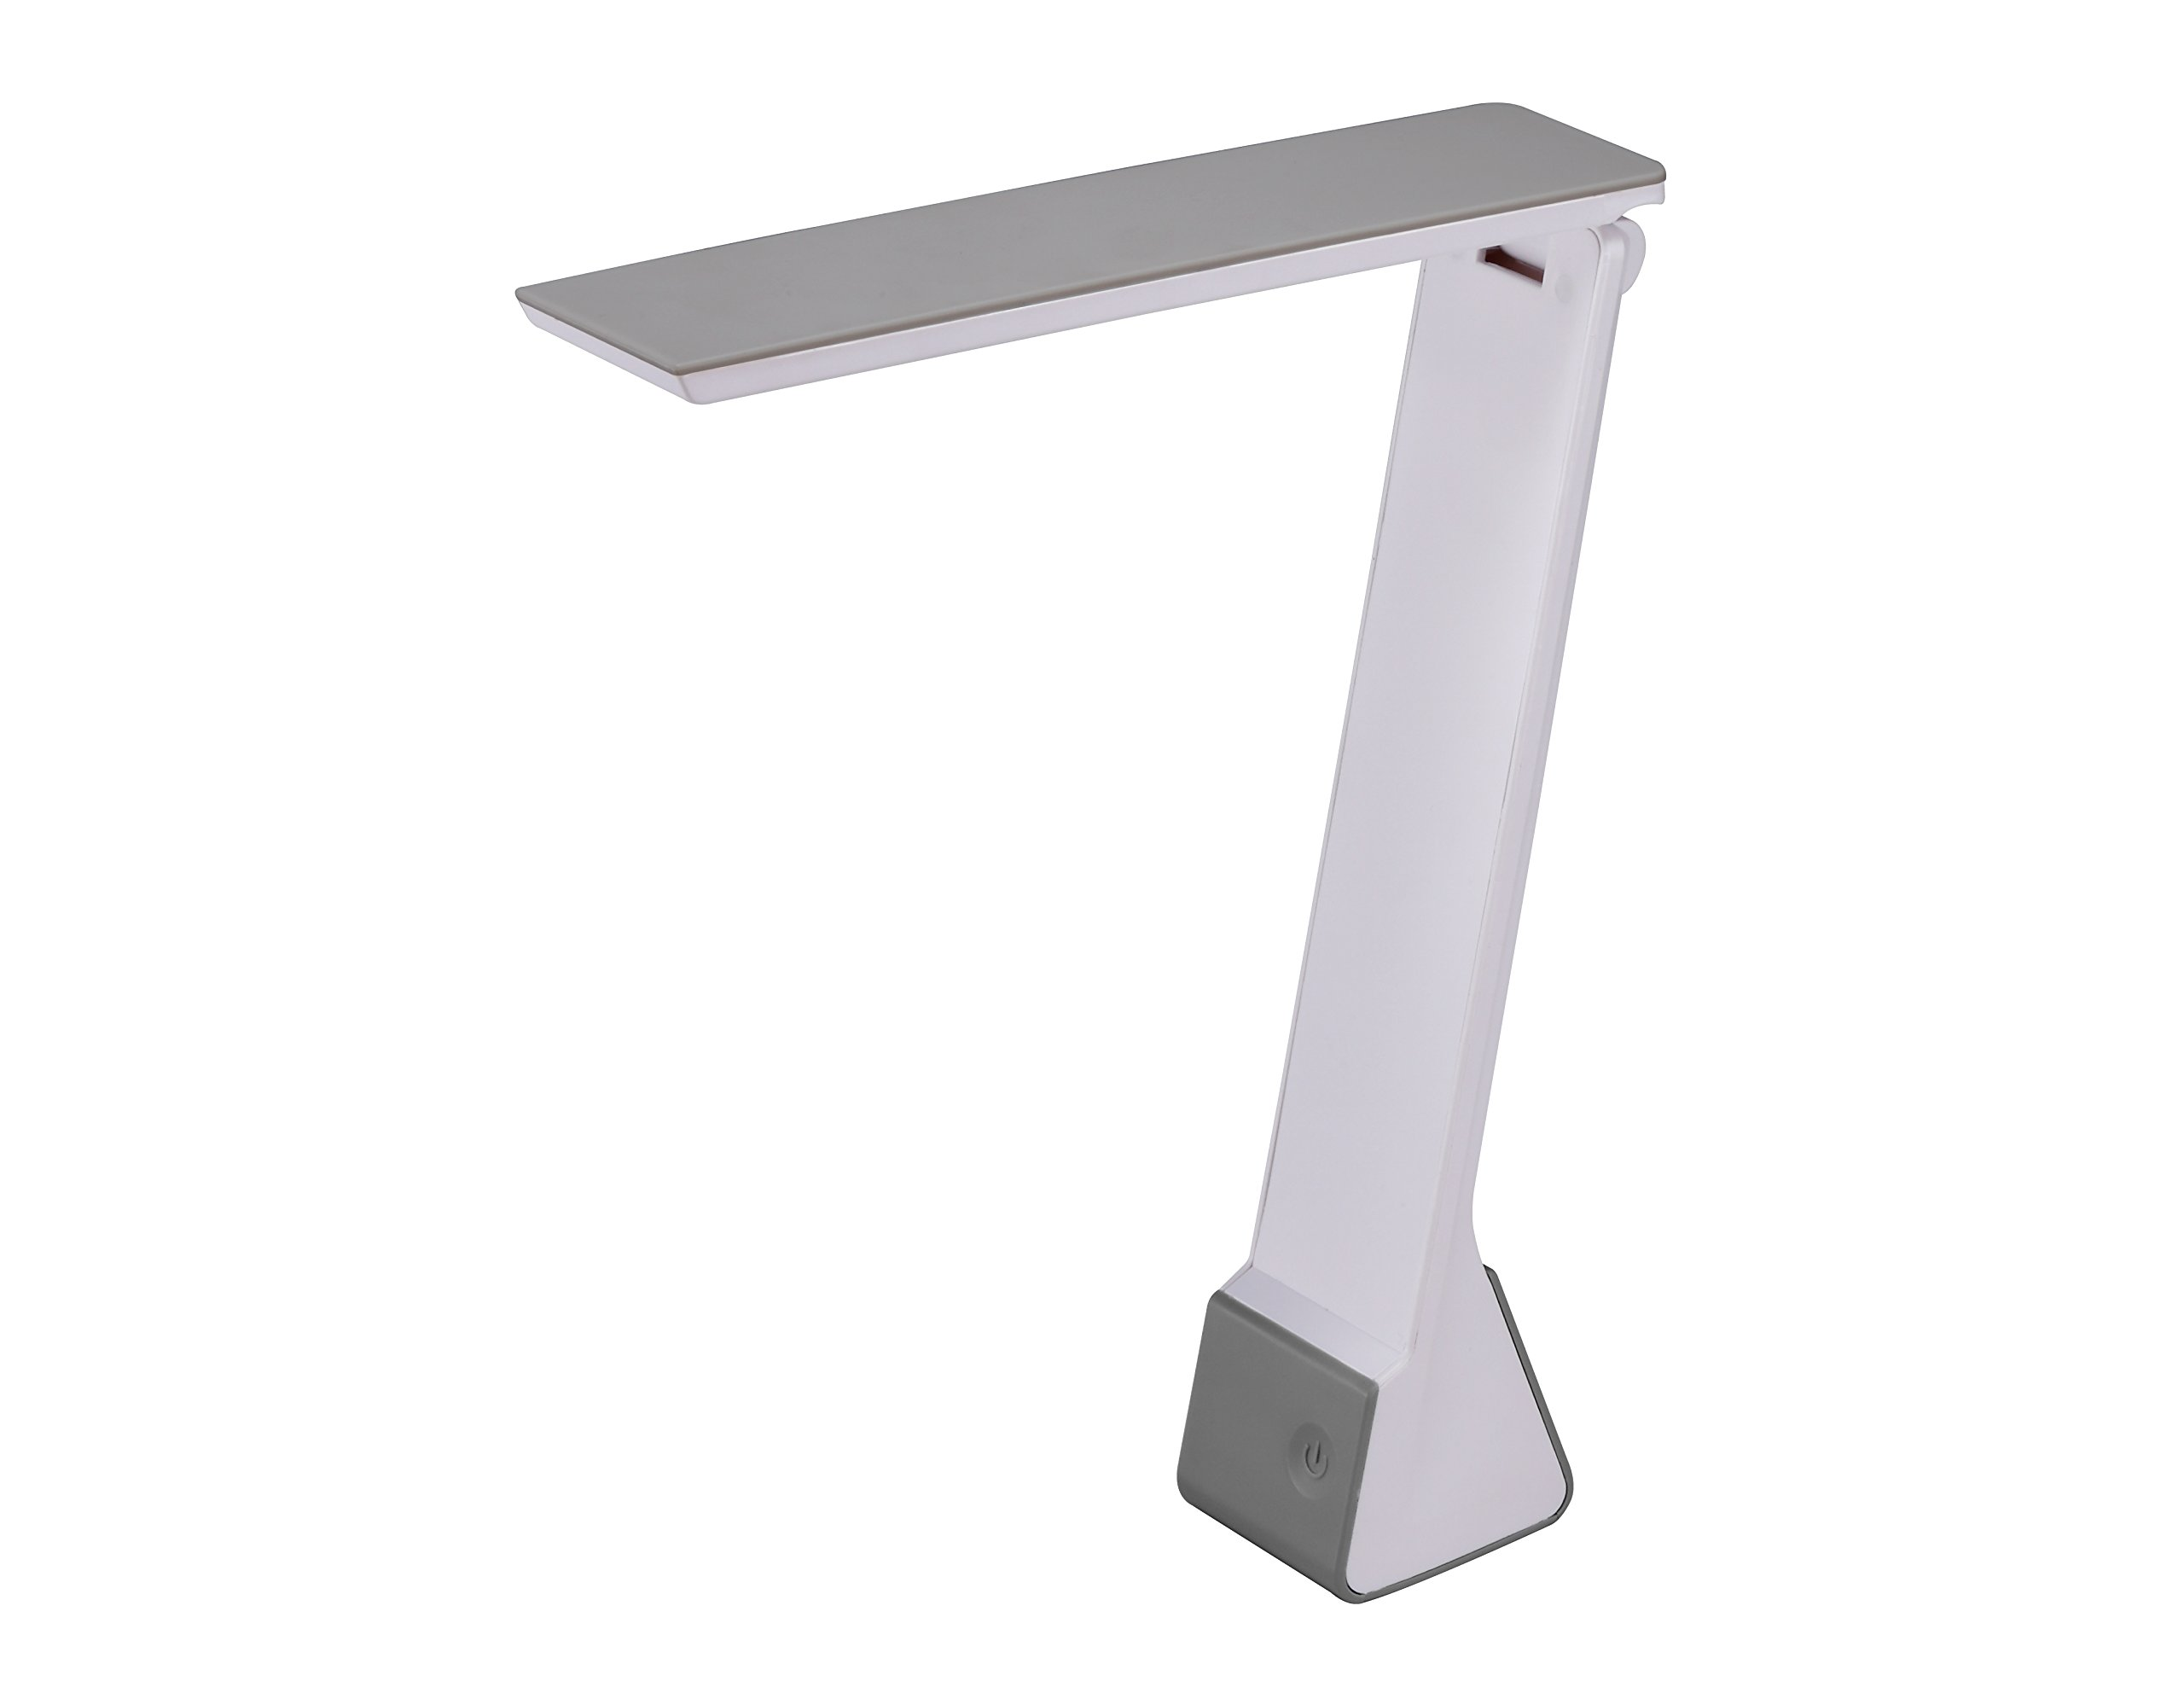 Bostitch Office KT-VLED1810-GRAY Powered Rechargable Battery LED Desk Lamp, 3 Color Temperatures, Flip Open, Gray